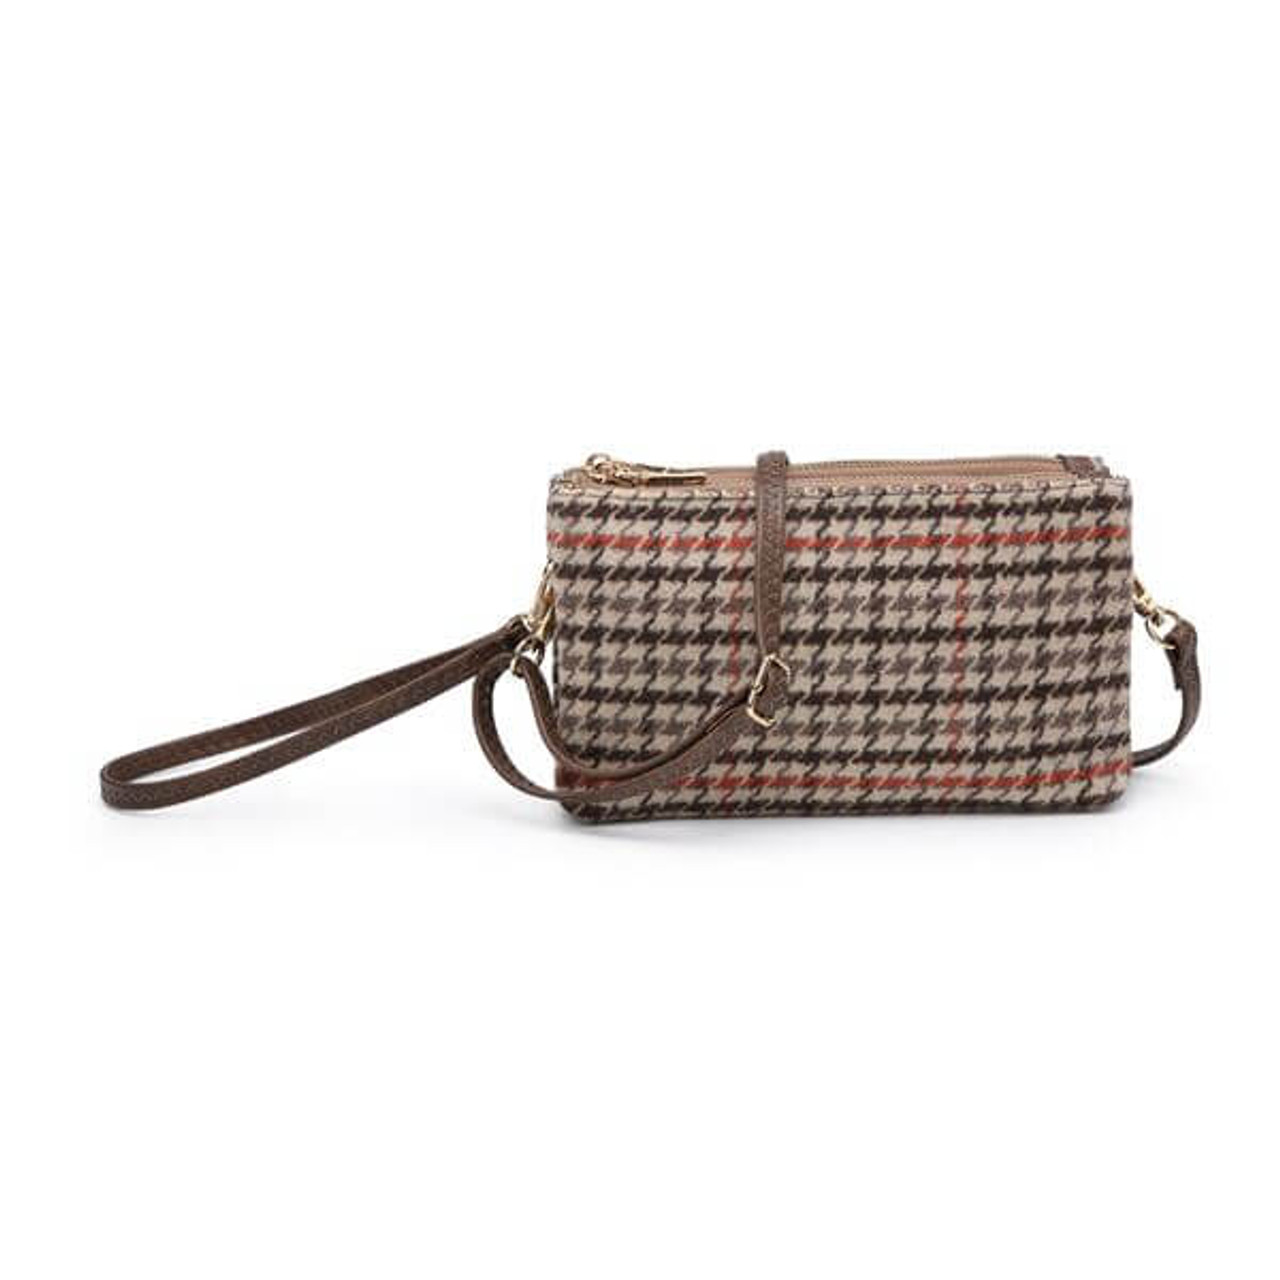 Riley camel and coffee houndstooth Wristlet and adjustable crossbody strap included. Three separate interior compartments with six credit card slots. Top zipper closure.